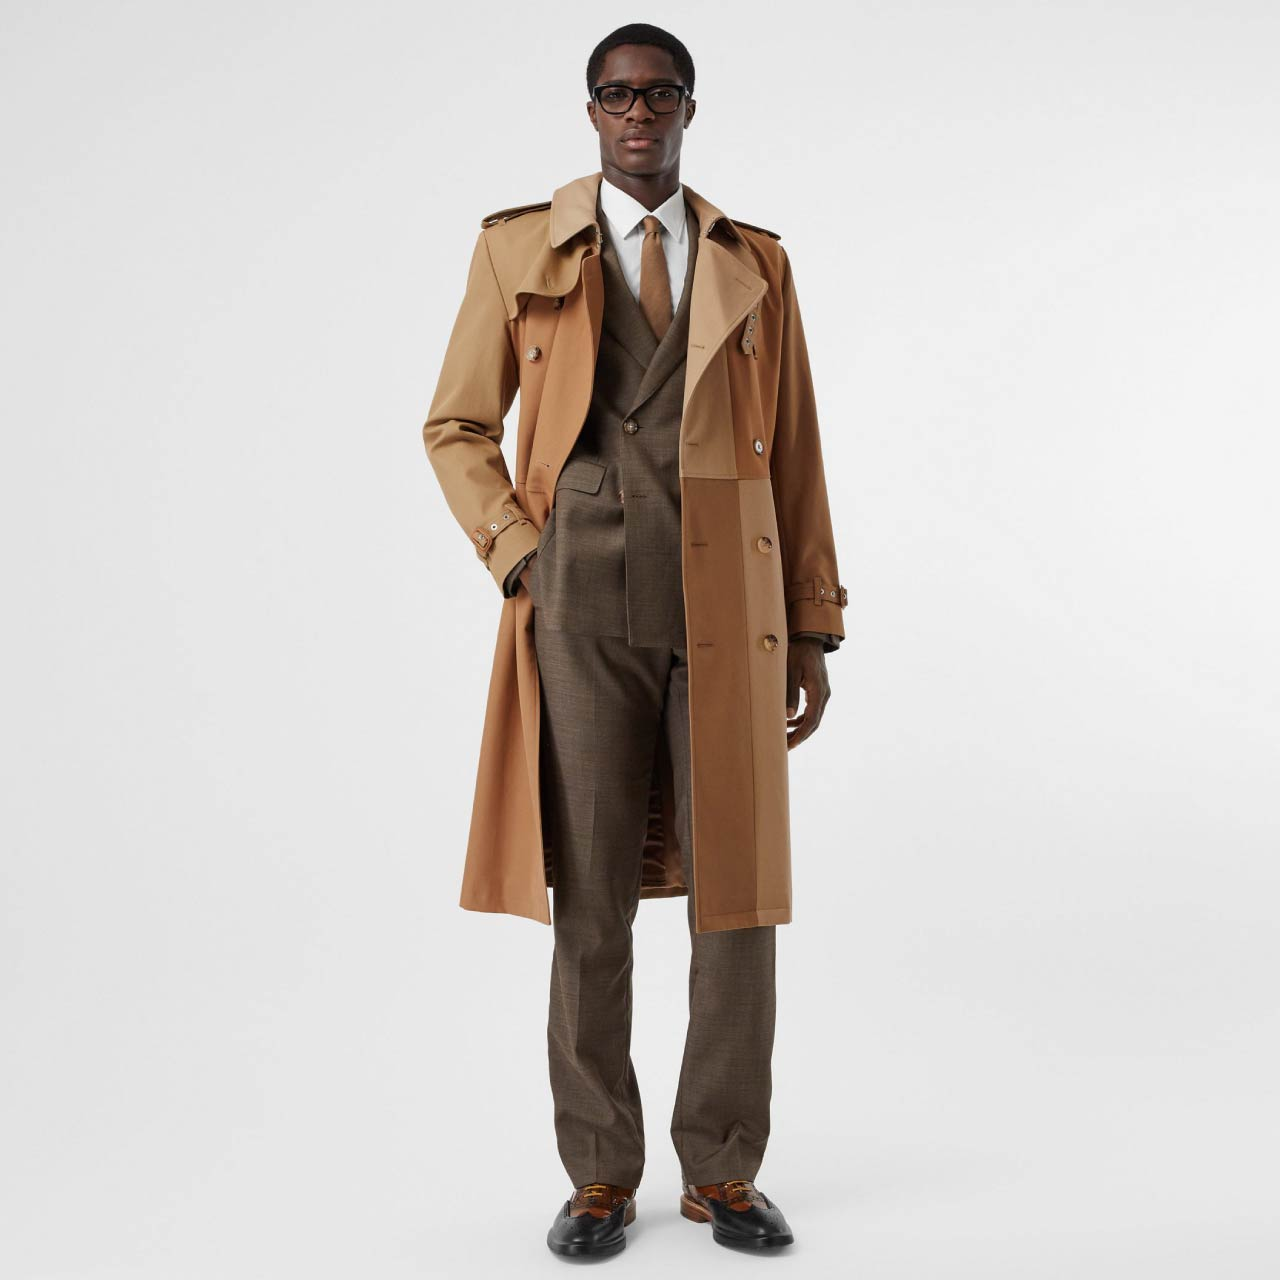 Burberry Trench Coat Details| The Cutting Class. Men's double-breasted trench coat with tonal panels.